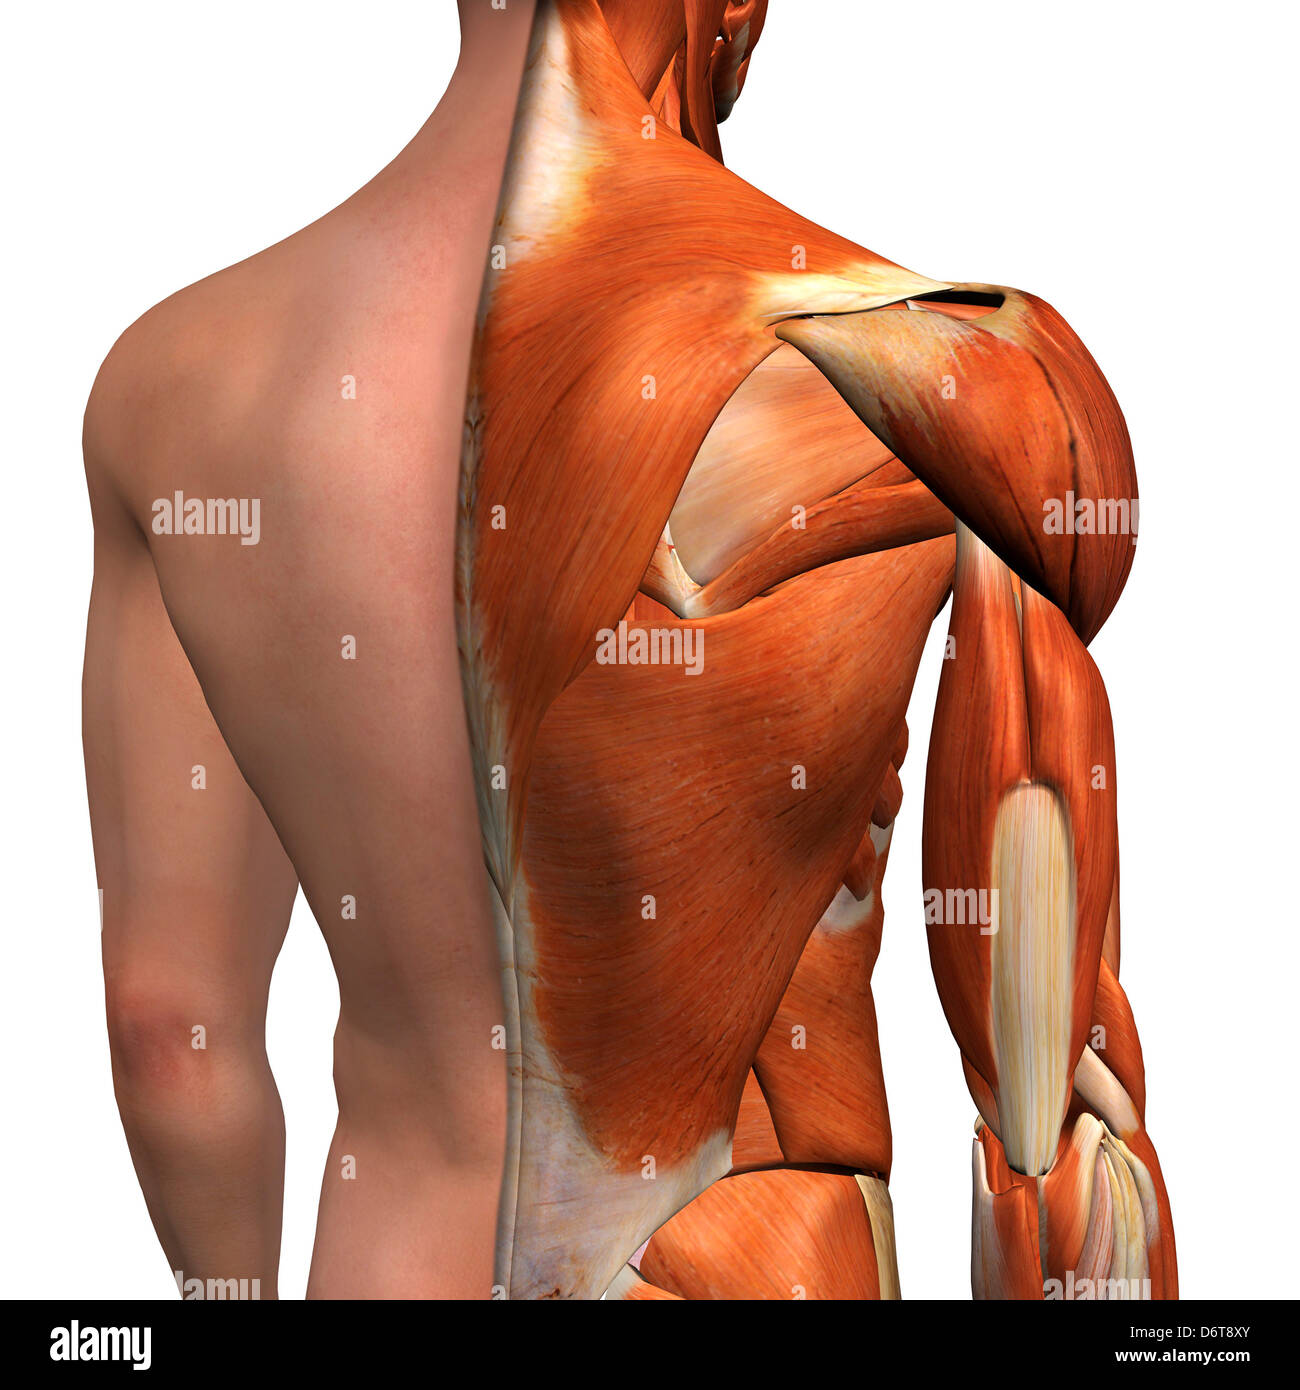 Cross-section anatomy of male shoulders and back muscles Stock Photo ...